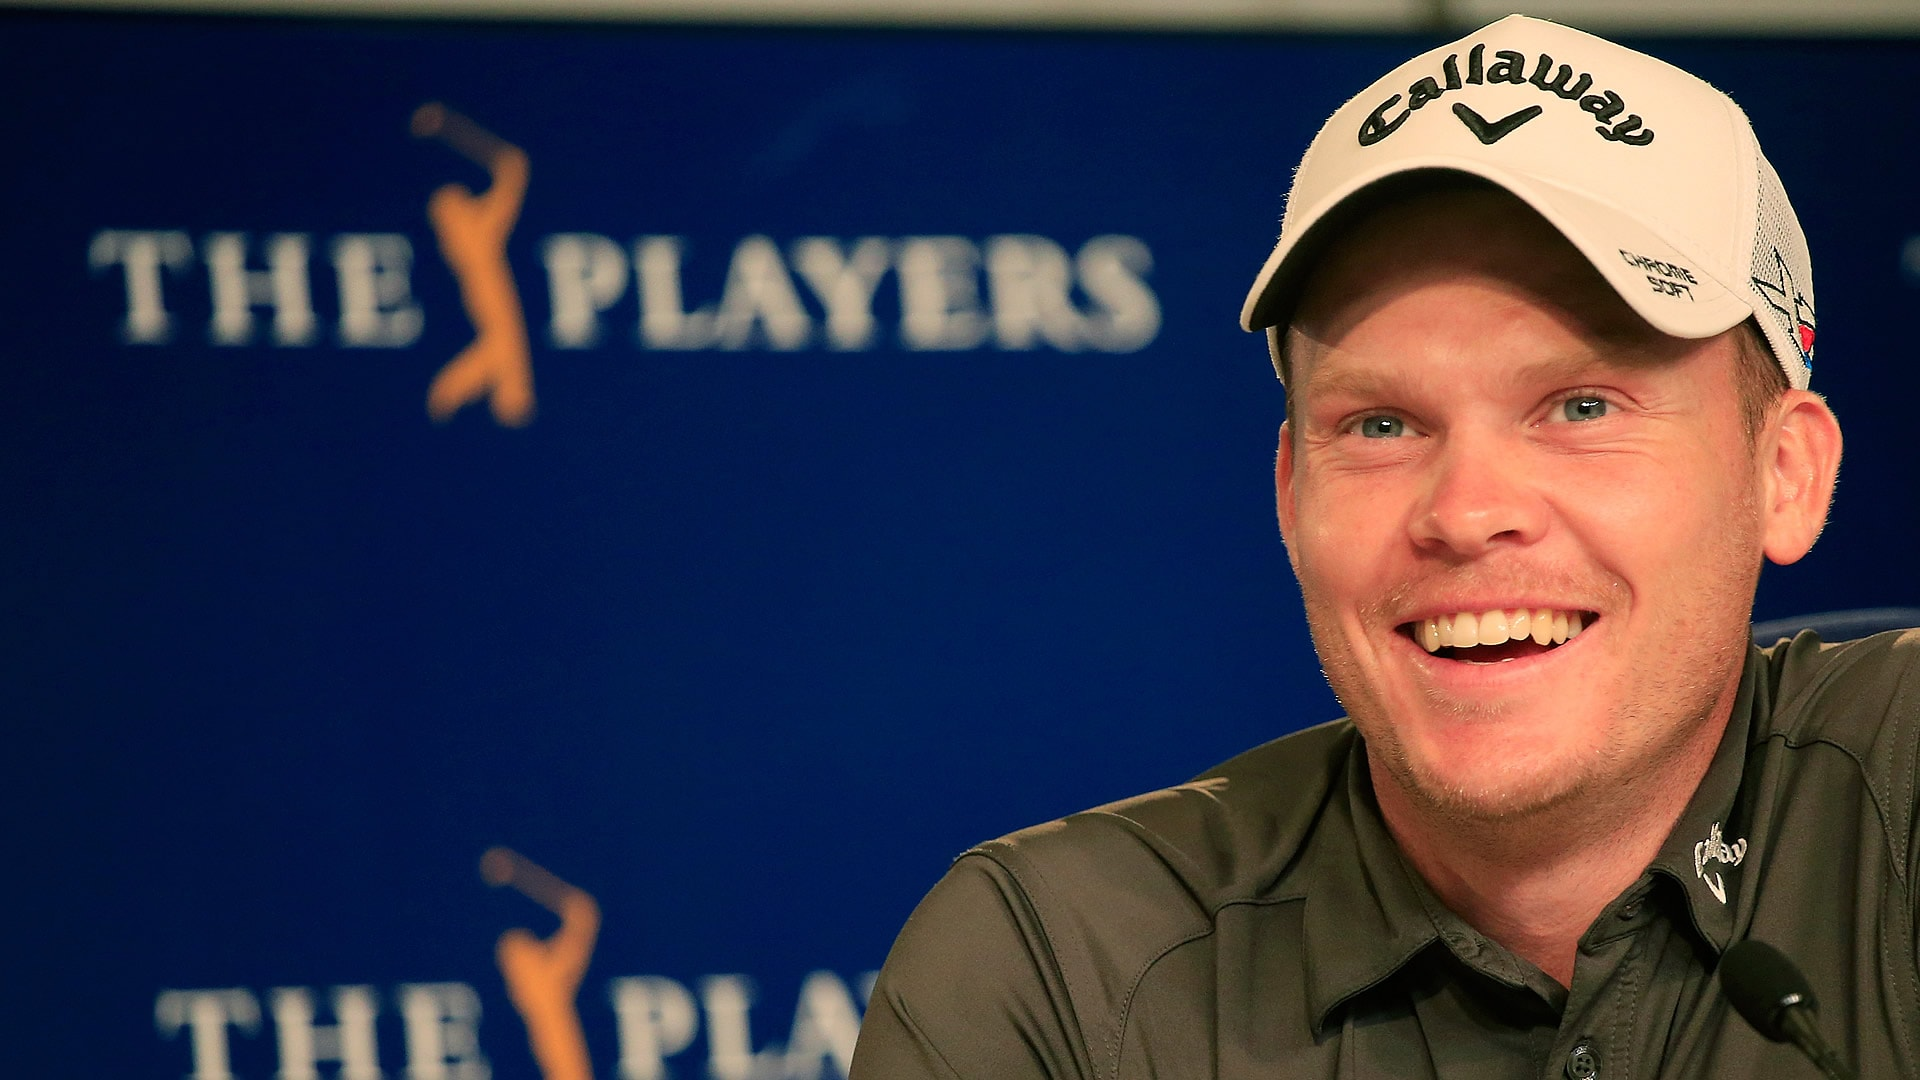 players championship 201: masters champ danny willett back from break